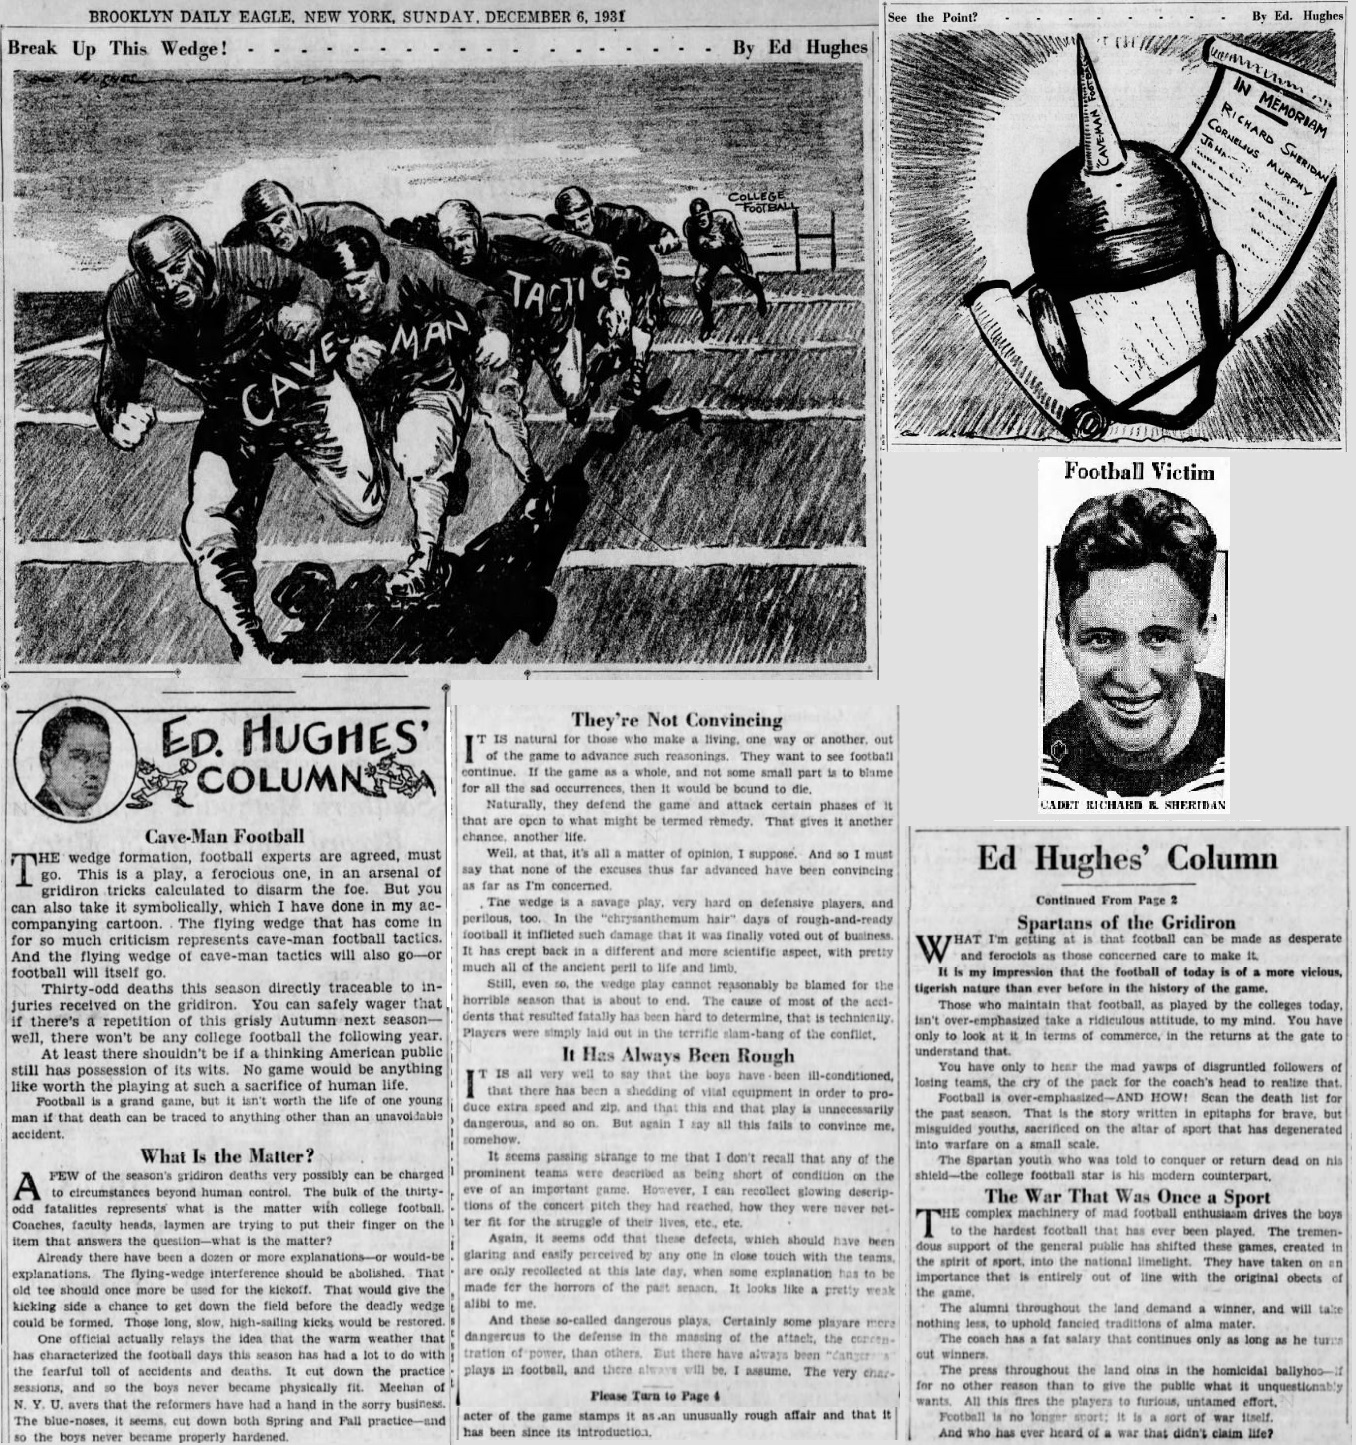 wedgeformation_1931_byedhughes_brooklyndailyeagle_dec61931